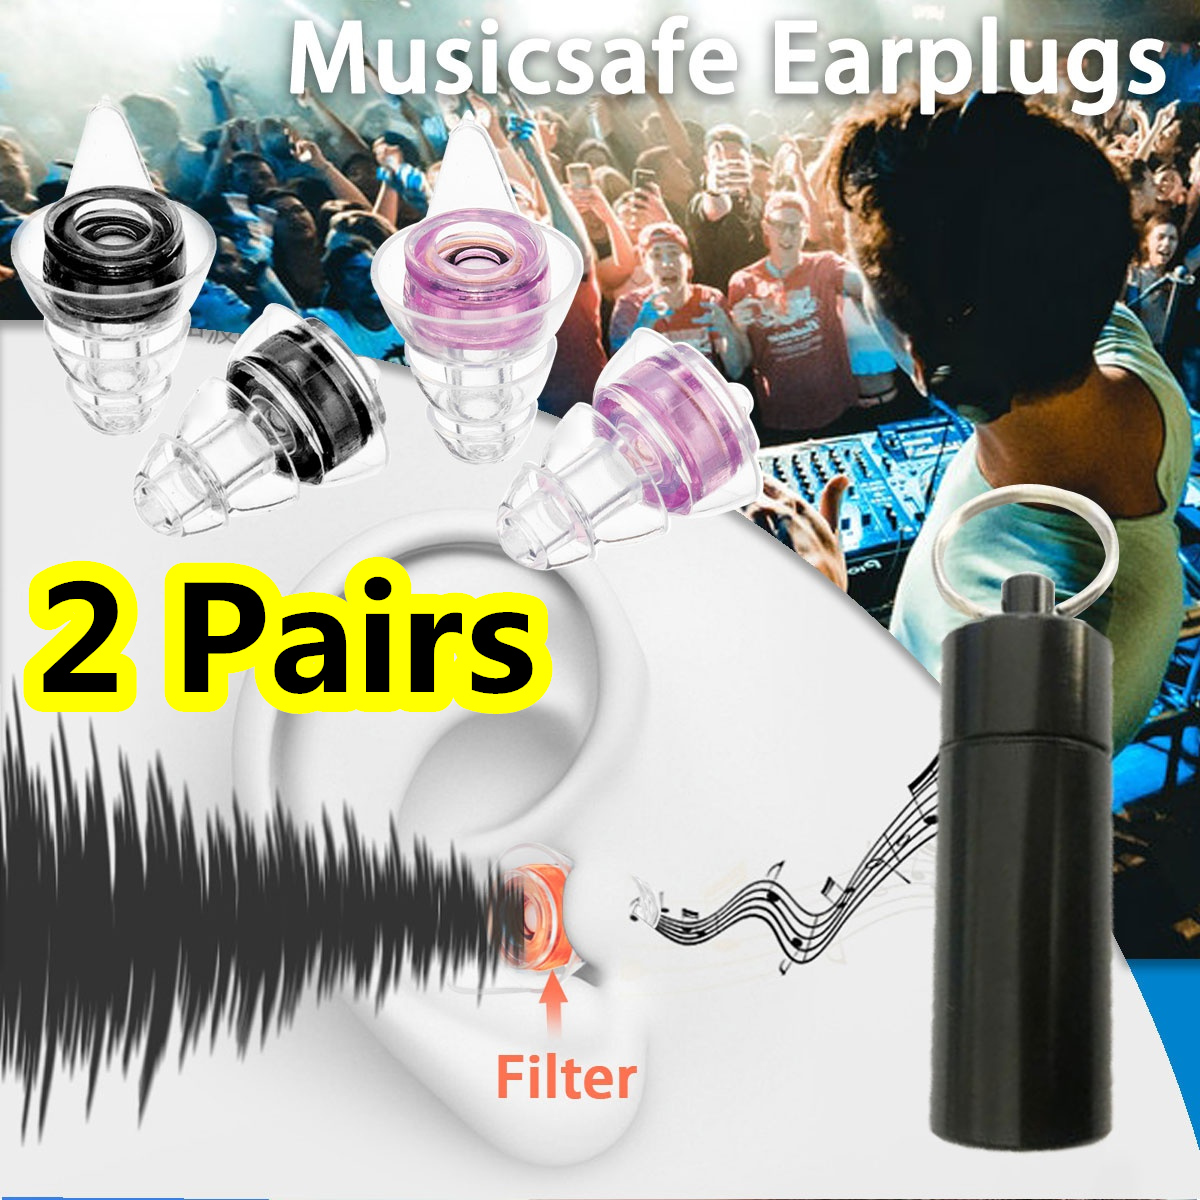 купить 2Pairs Noise Cancelling Hearing Protection Earplugs Reusable Waterproof Silicone Ear plugs For Concerts Musician Motorcycles по цене 1098.84 рублей